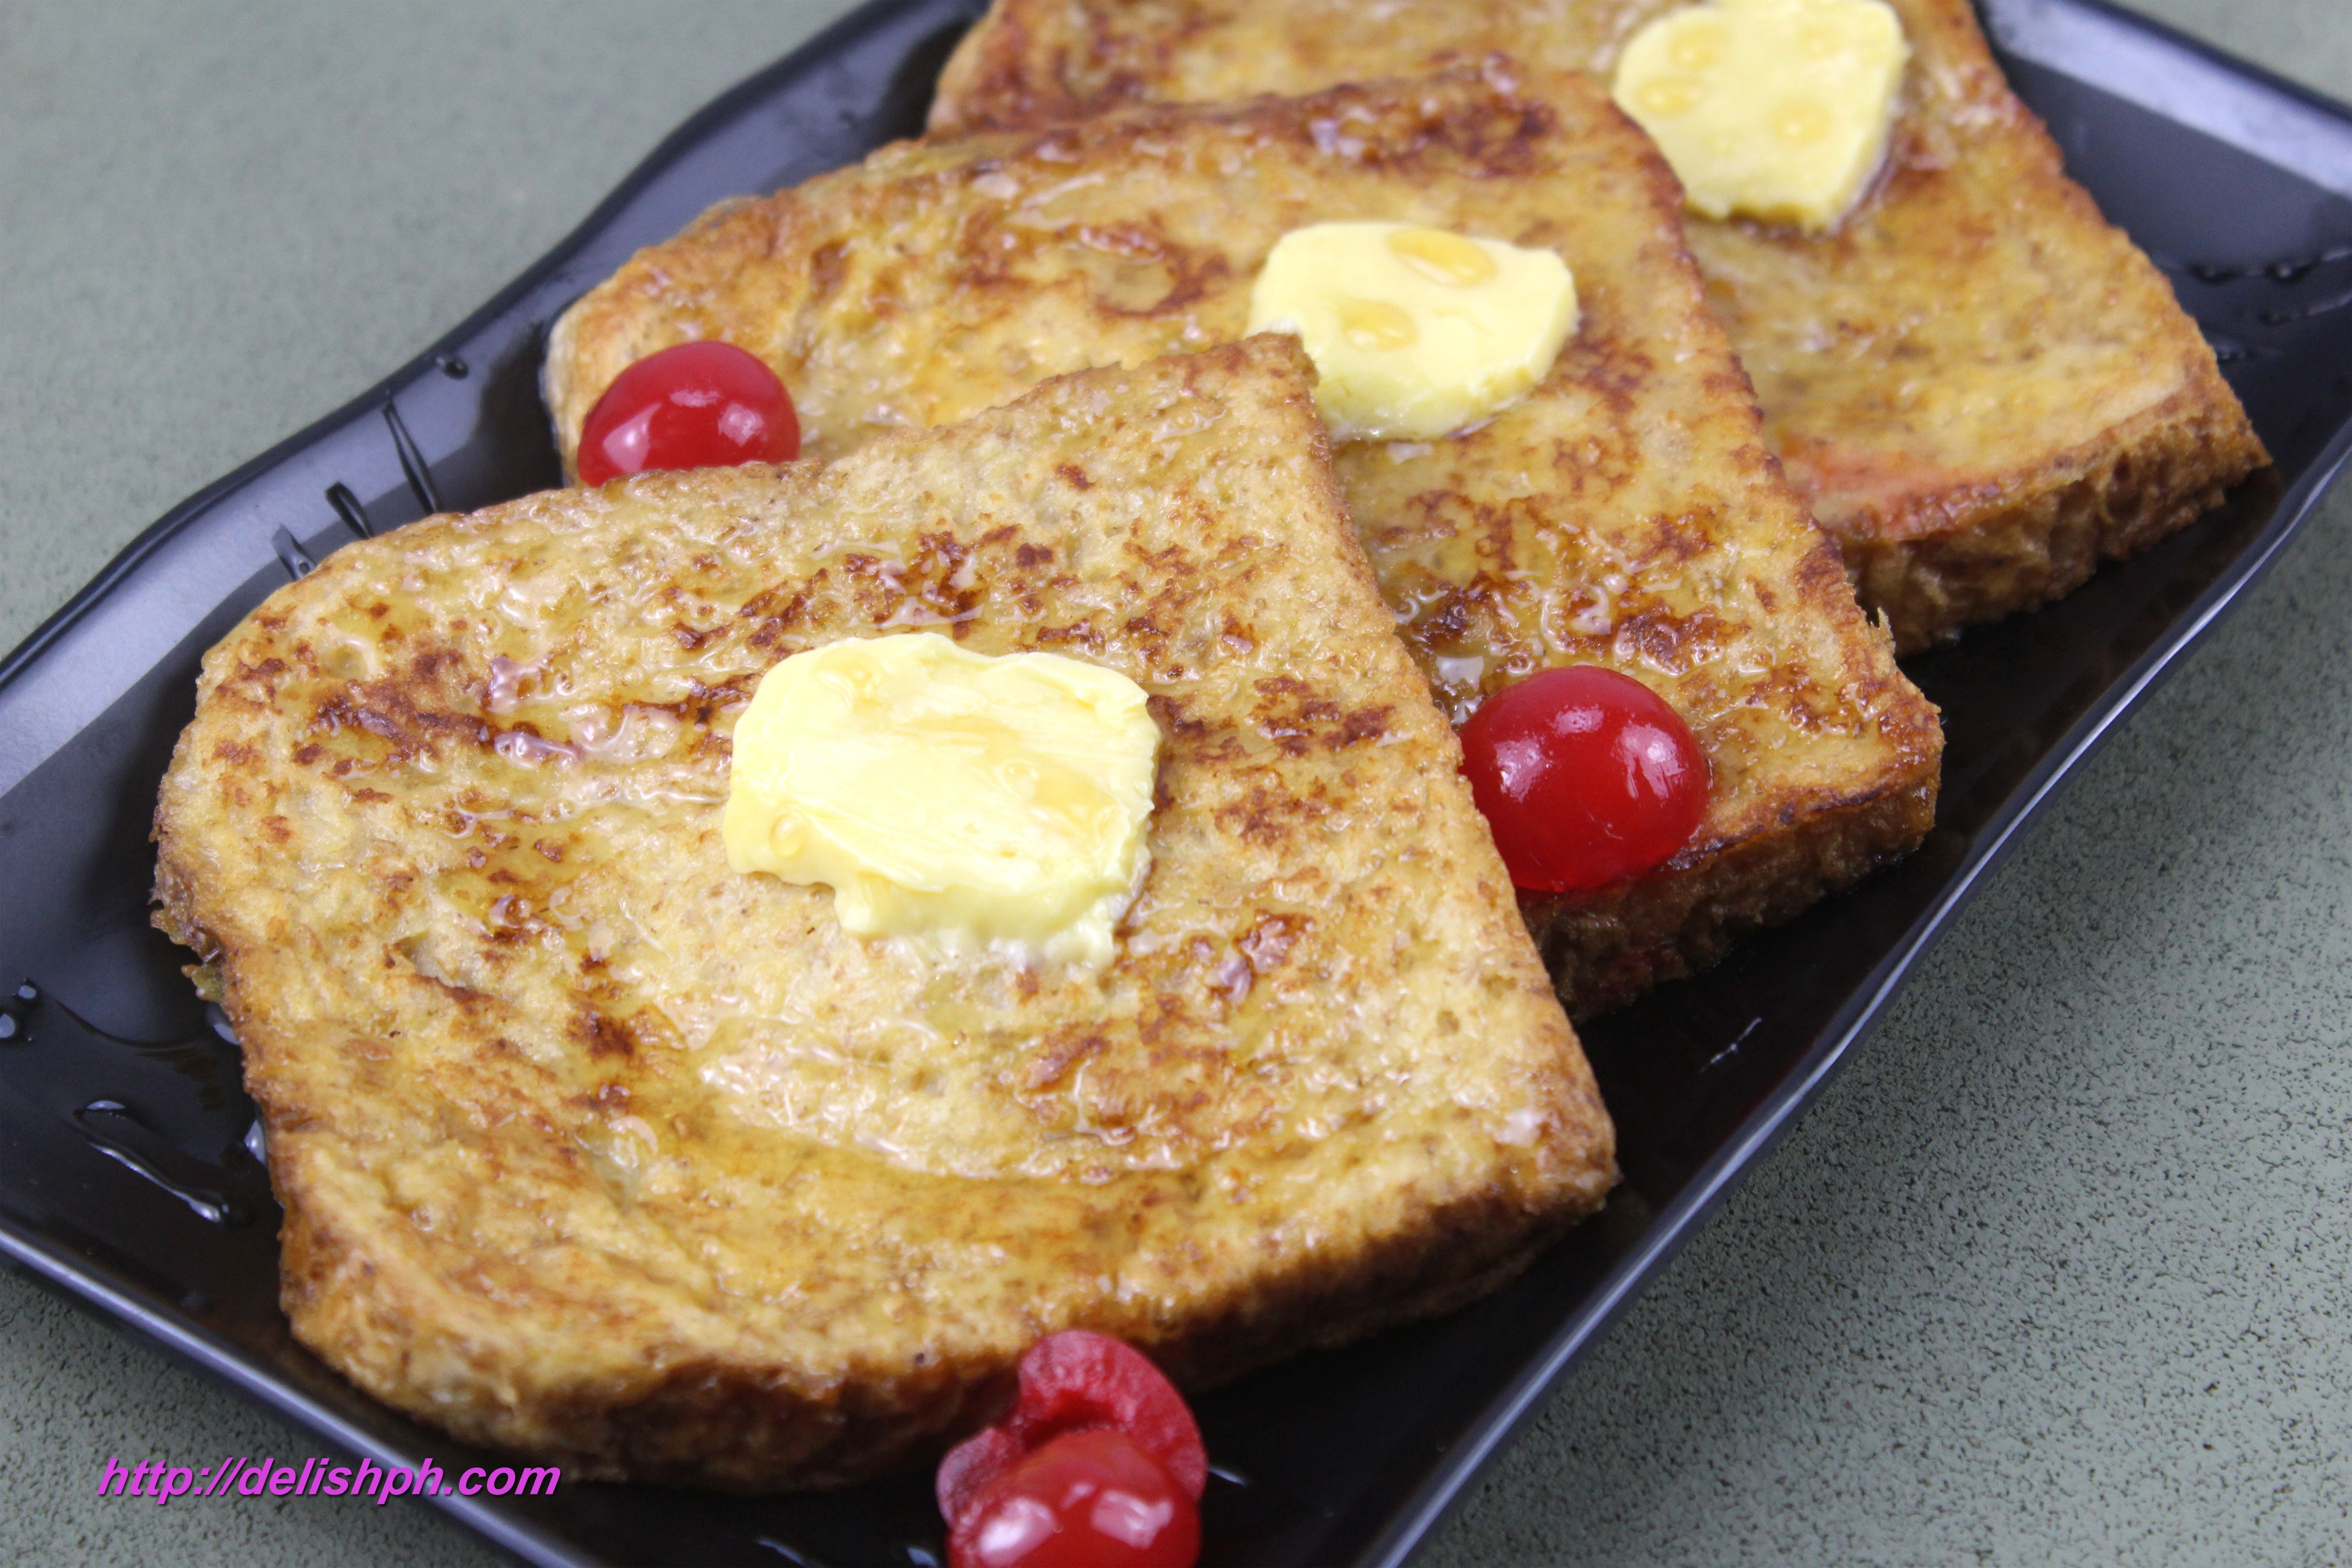 French toast httpdelishphfrench toast httpsyoutube french toast httpdelishphfrench toast https filipino recipeswatchfrench toasteasy recipesyoutubeclockeasy shot recipeseasy food recipesyoutubers forumfinder Gallery